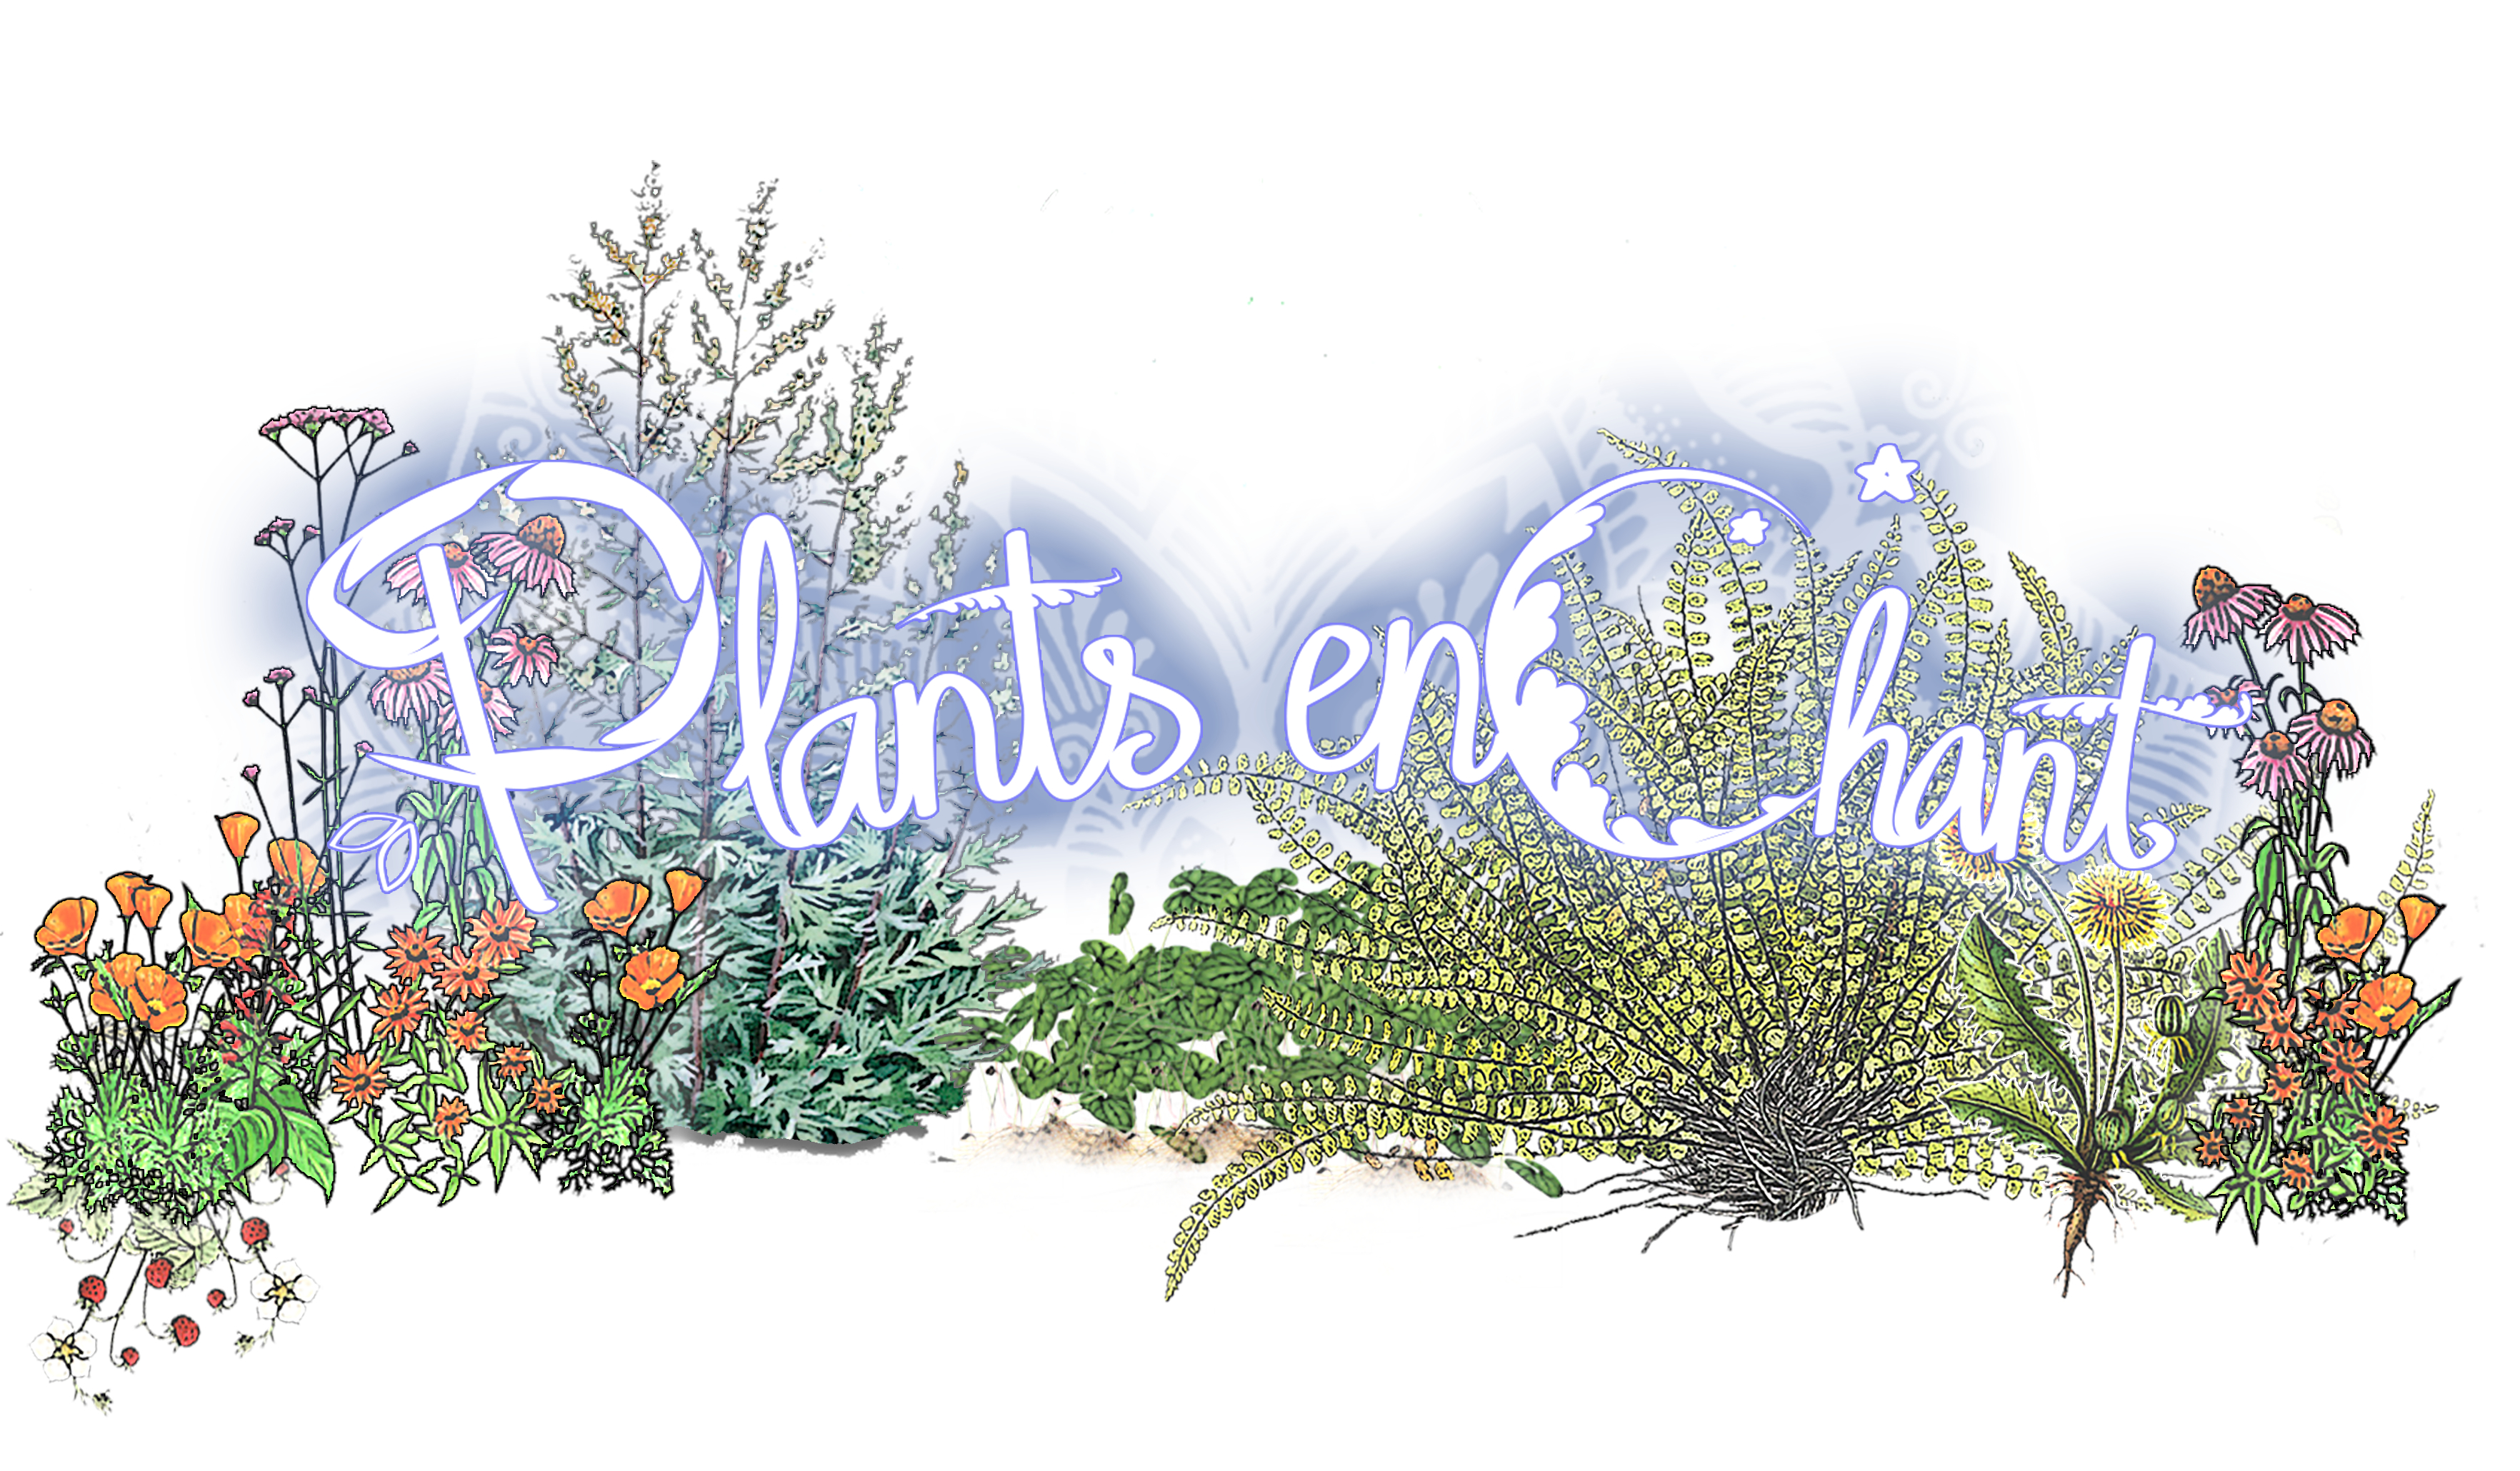 Plants enChant – Singing Alive